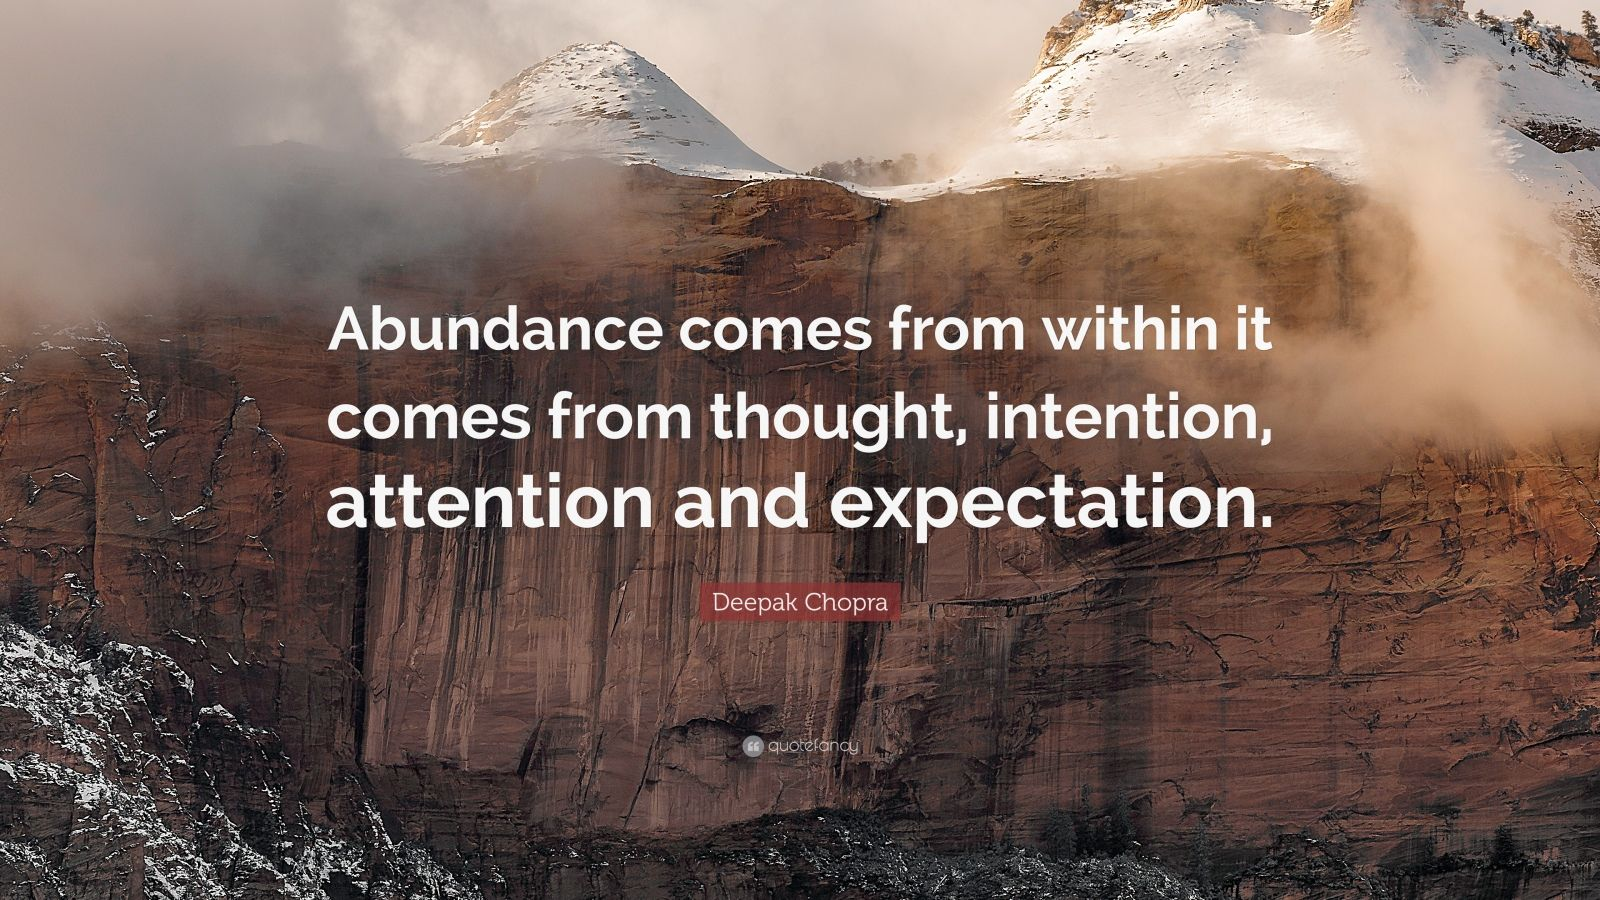 Swami Vivekananda Quotes Wallpaper Deepak Chopra Quote Abundance Comes From Within It Comes